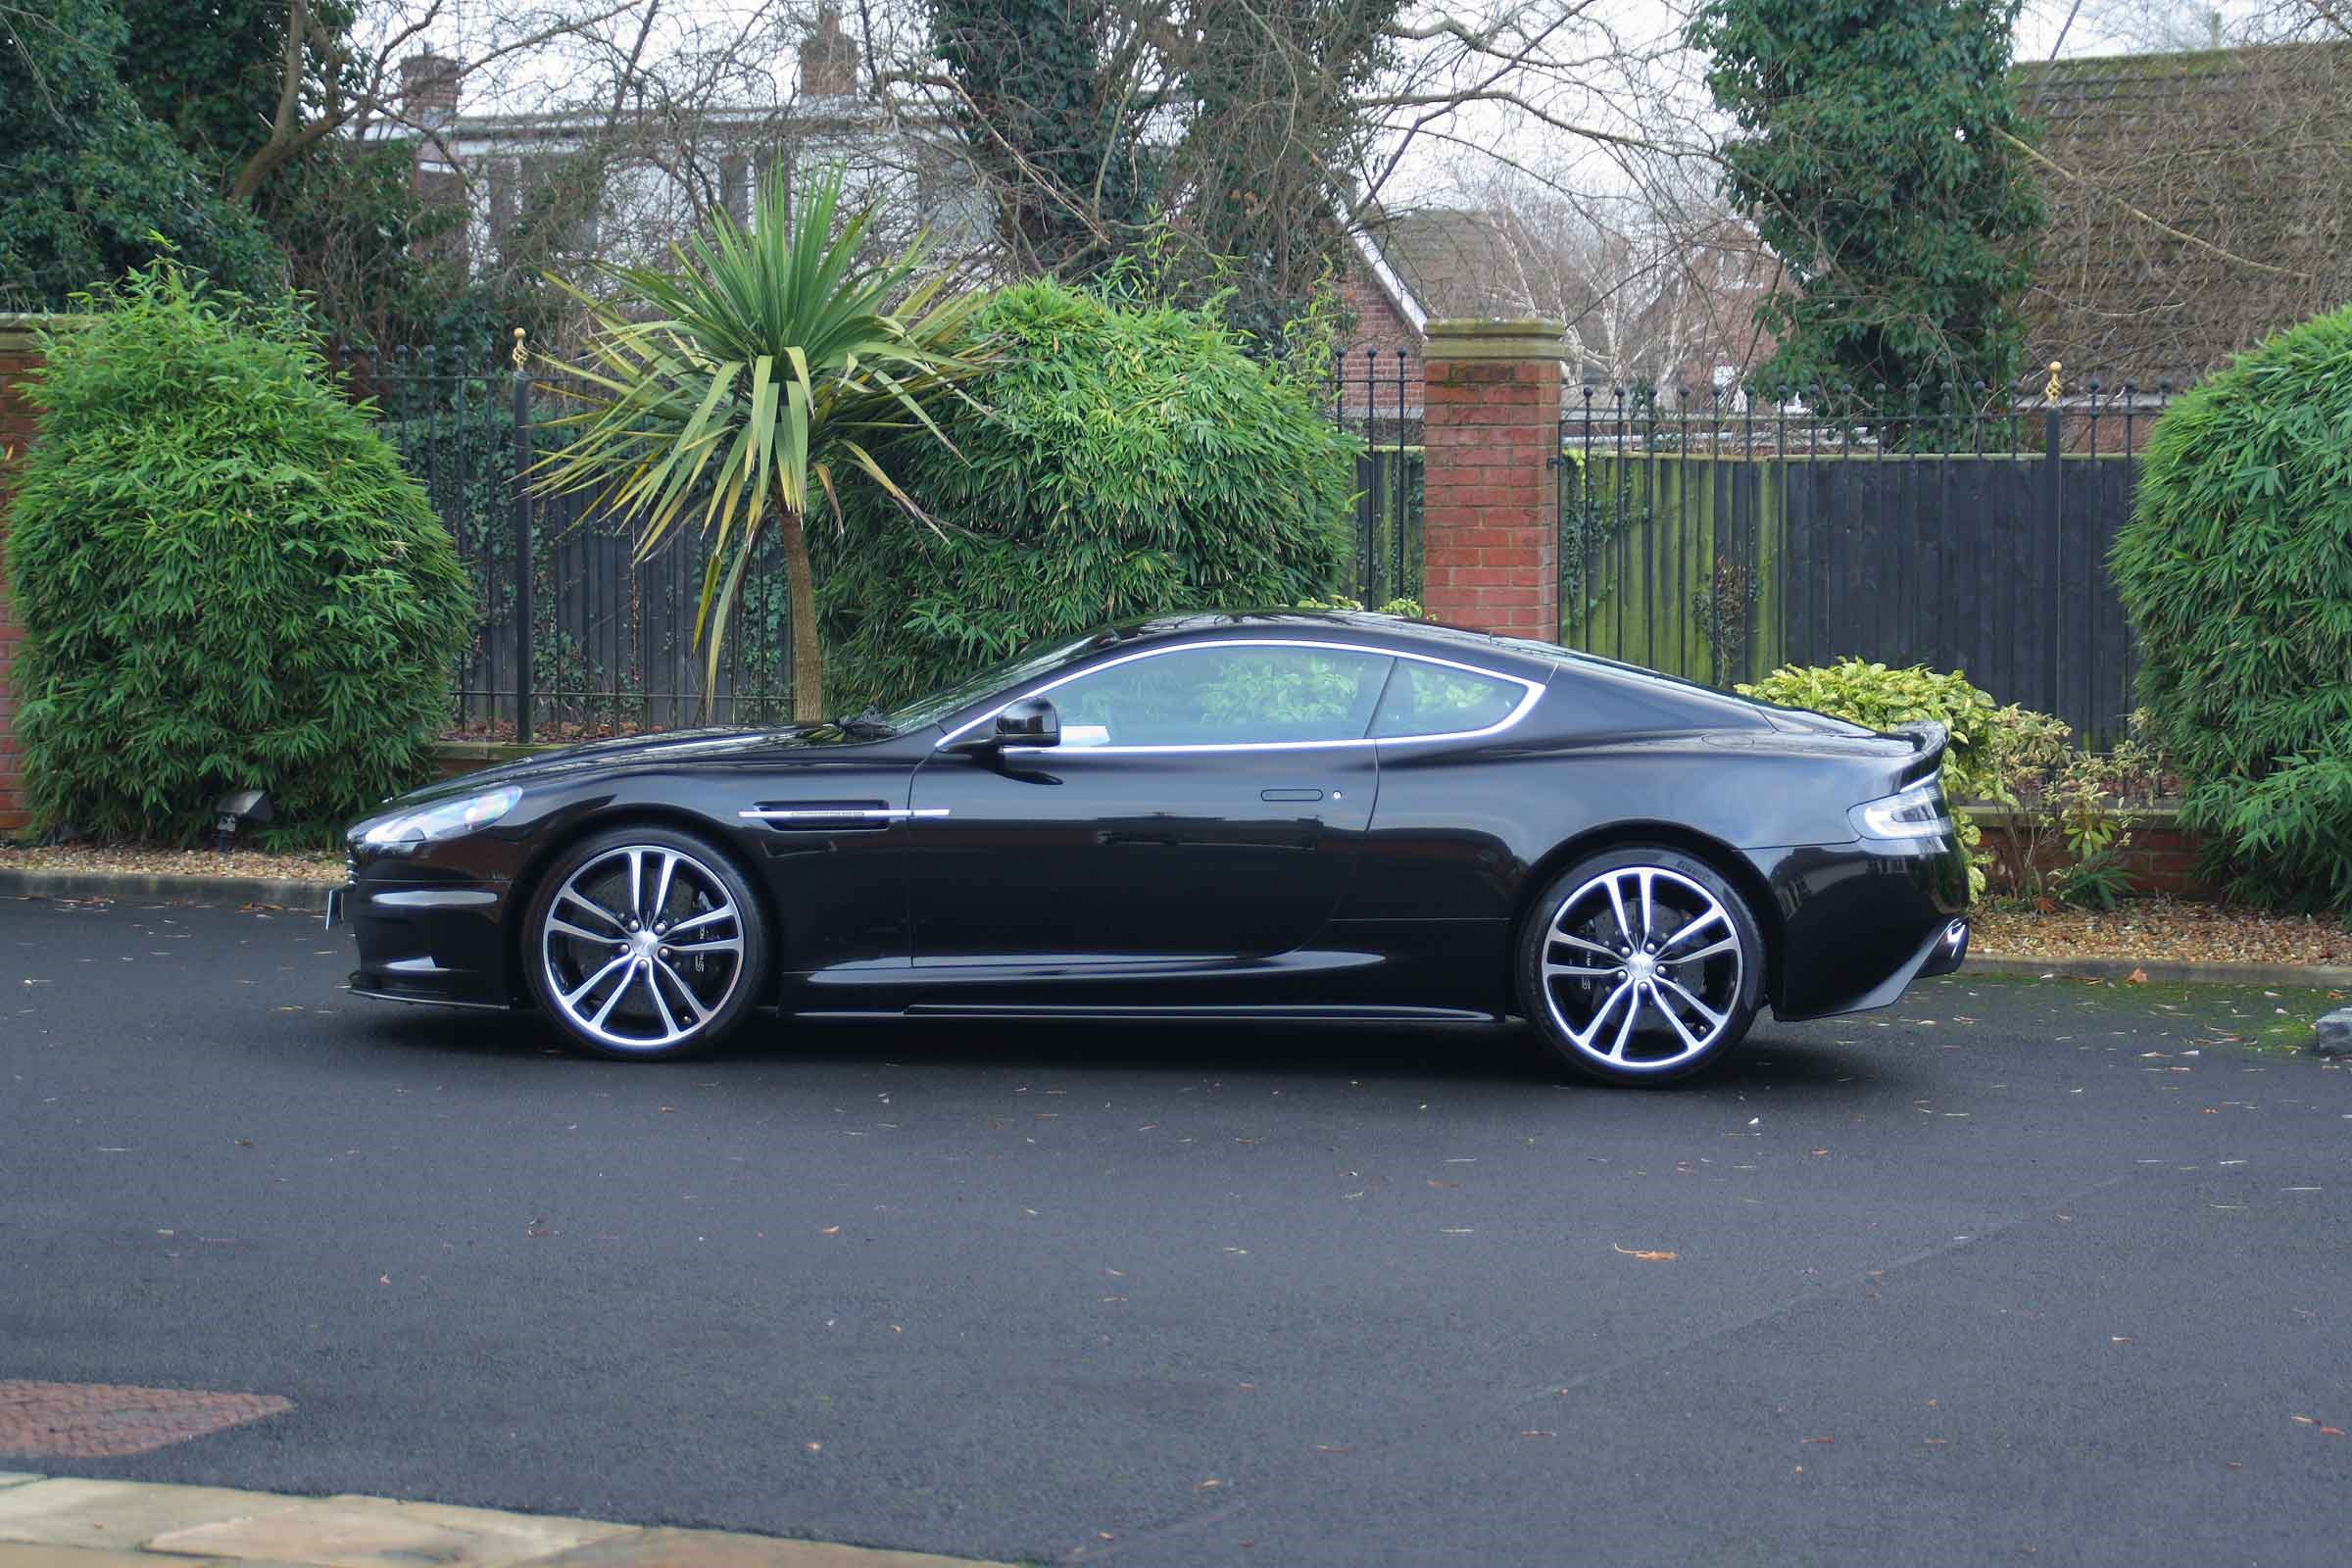 The Aston Martin Dbs Carbon Black Limited Edition Spec